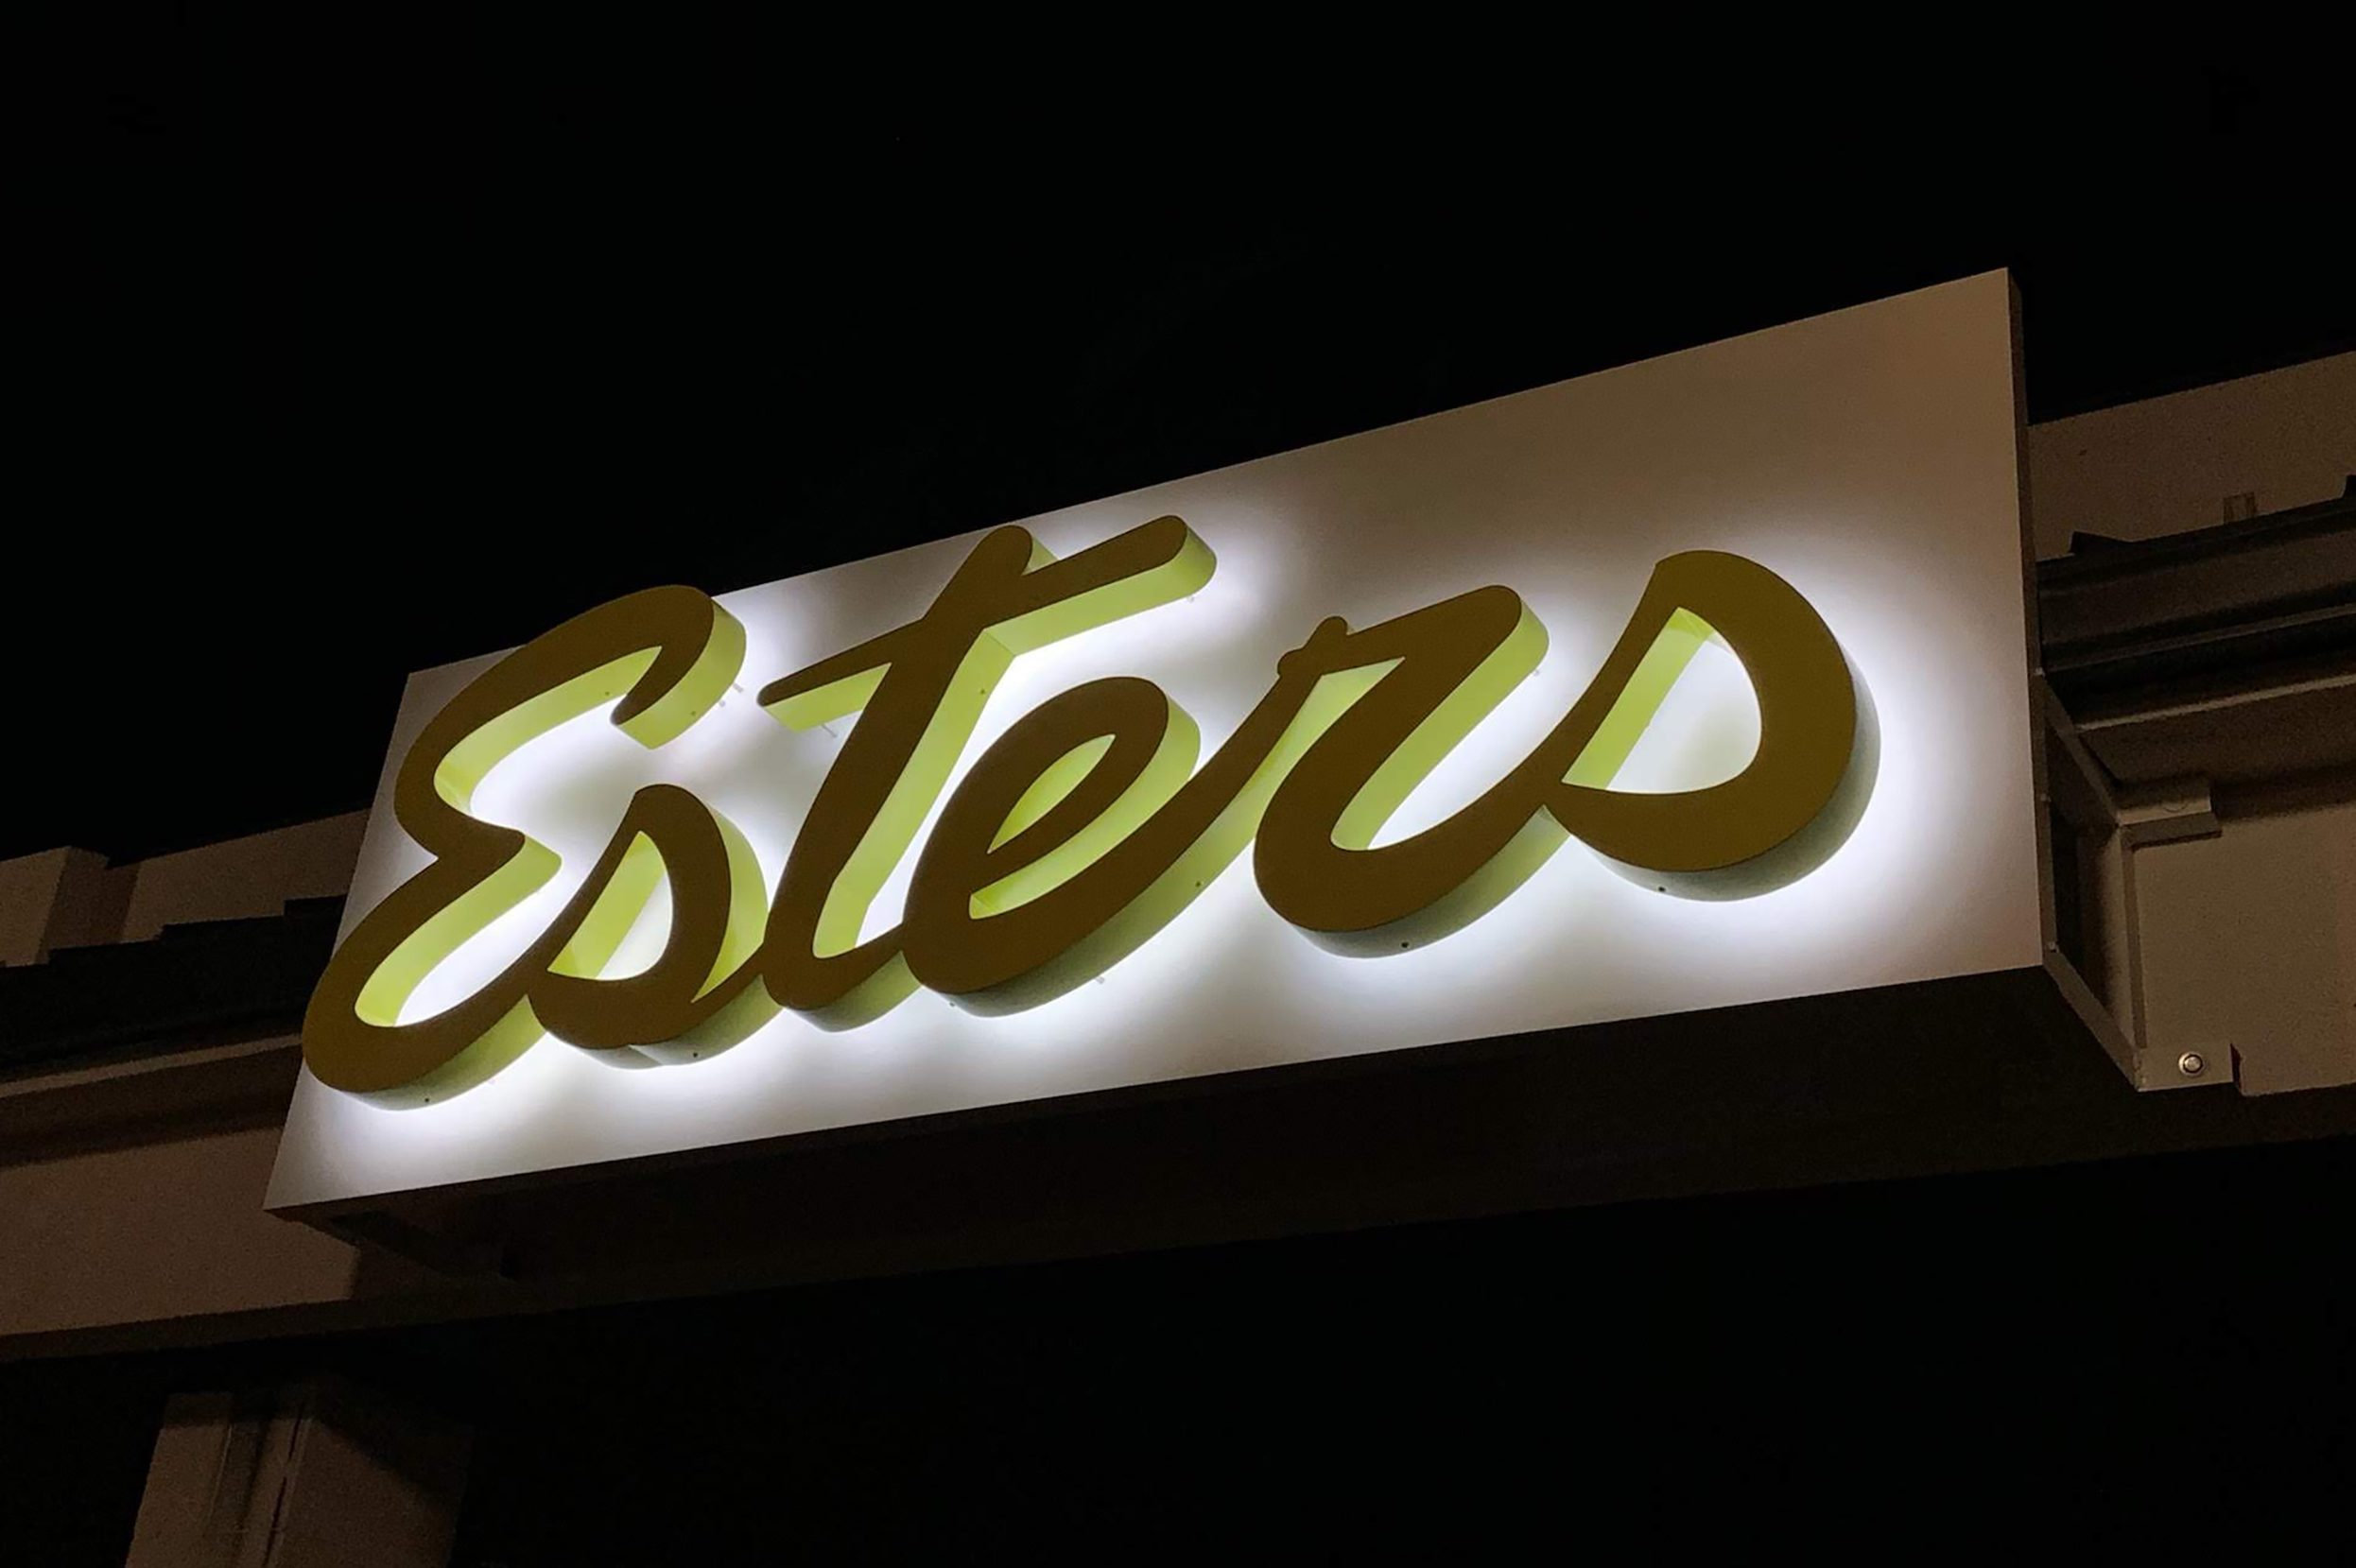 Esters Night